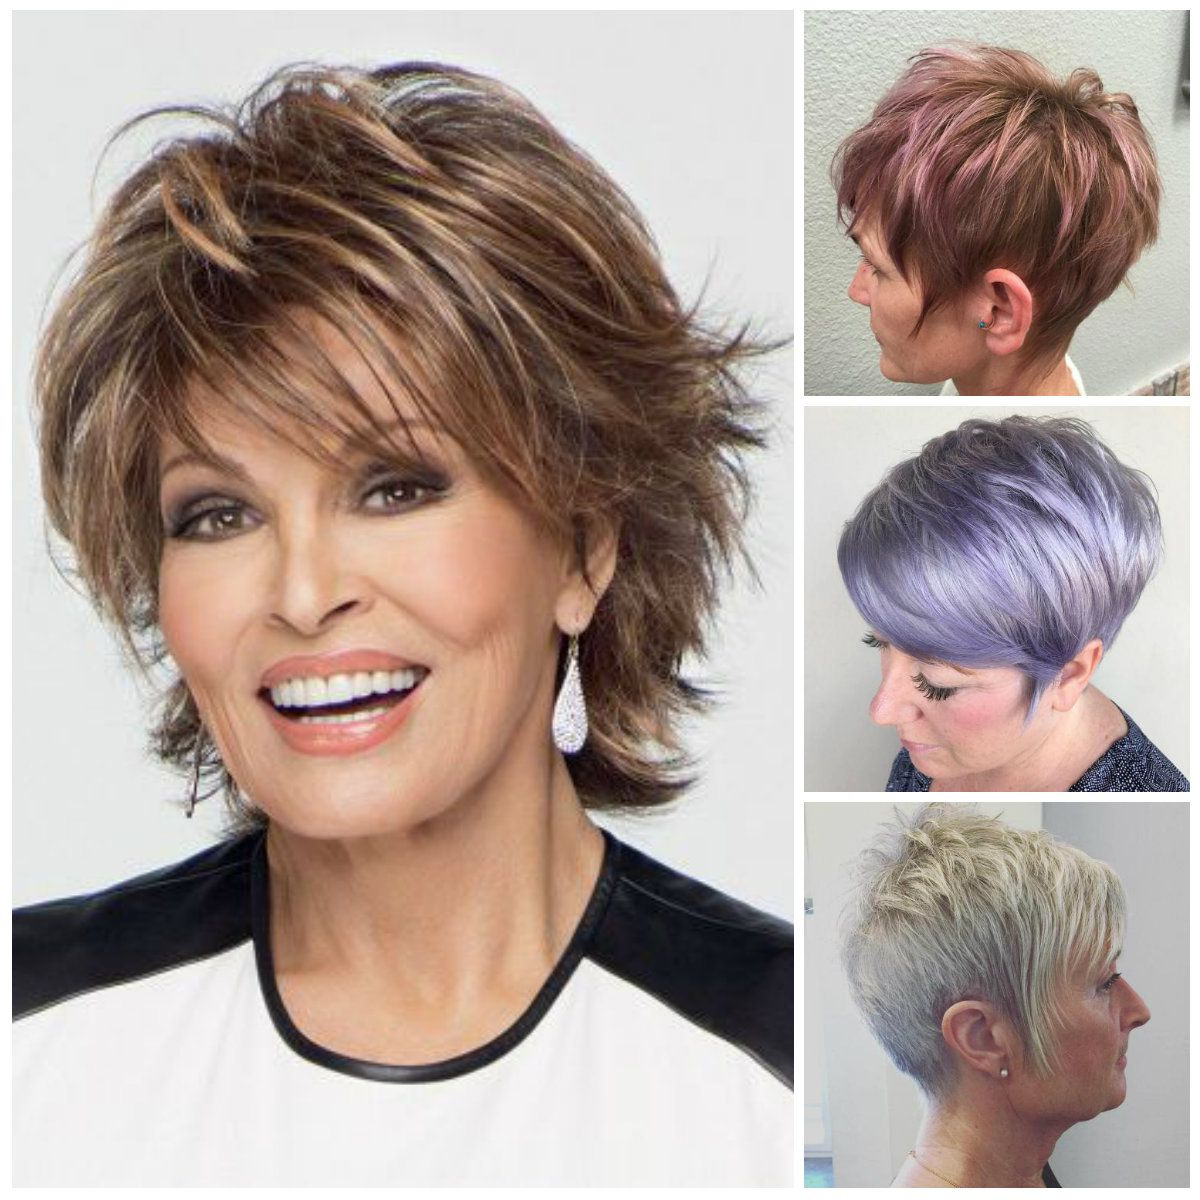 70 Hairstyles For Small Faces Best Of 2017 Short Hairstyles For Intended For Short Hairstyles For Small Faces (View 3 of 25)